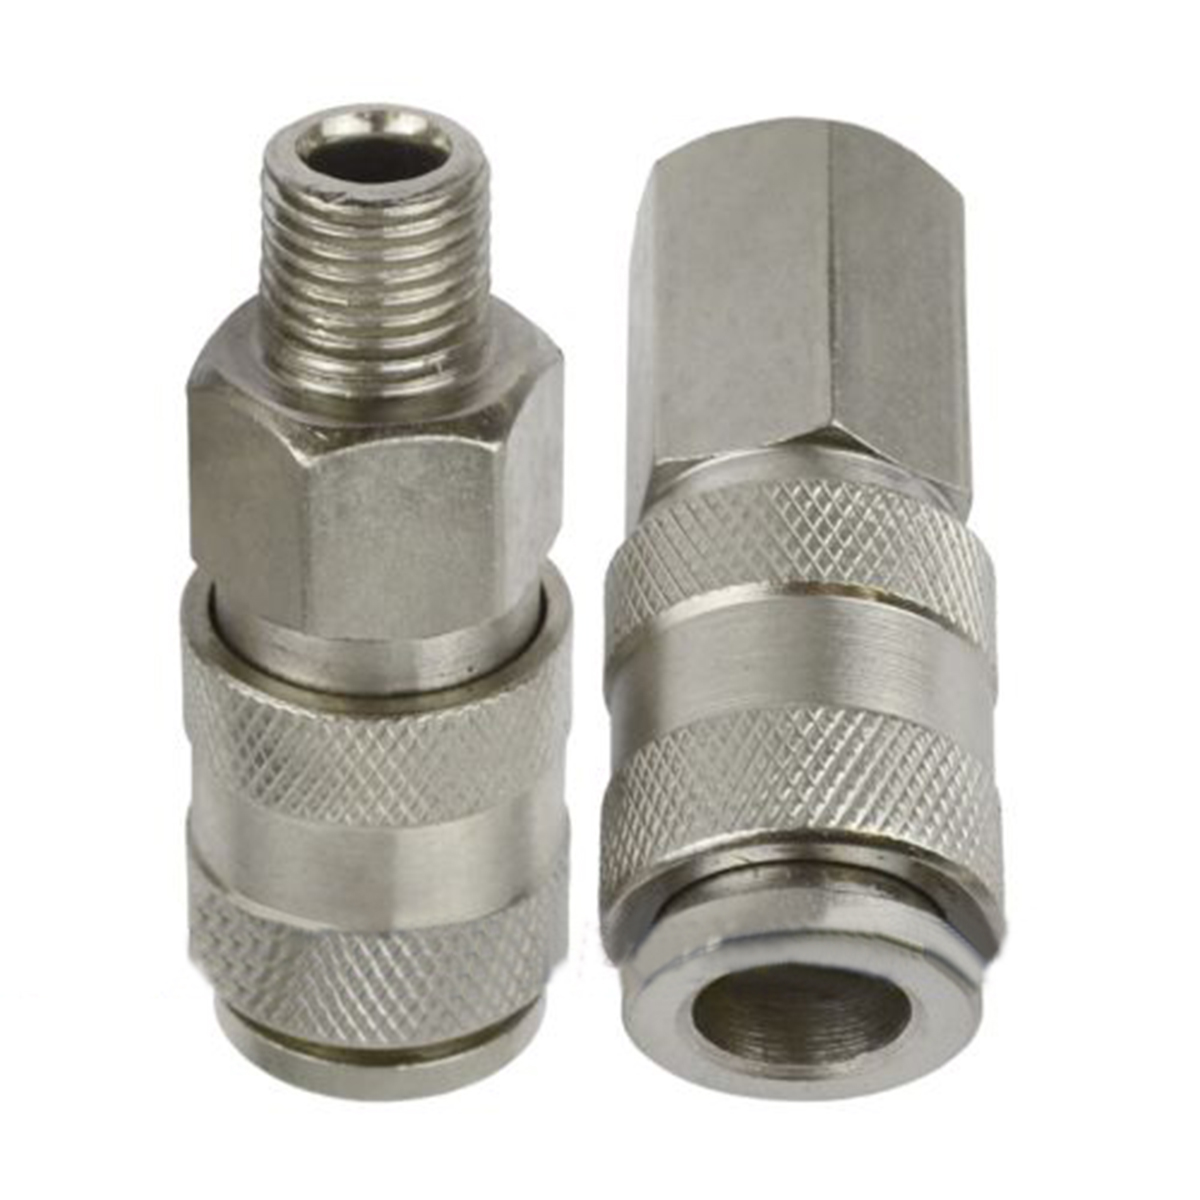 2pcs Euro Air Line Hose Compressor Connector Female/Male 1/4 BSP Thread Female Quick Release Fittings Mayitr For Home Tools 13mm male thread pressure relief valve for air compressor